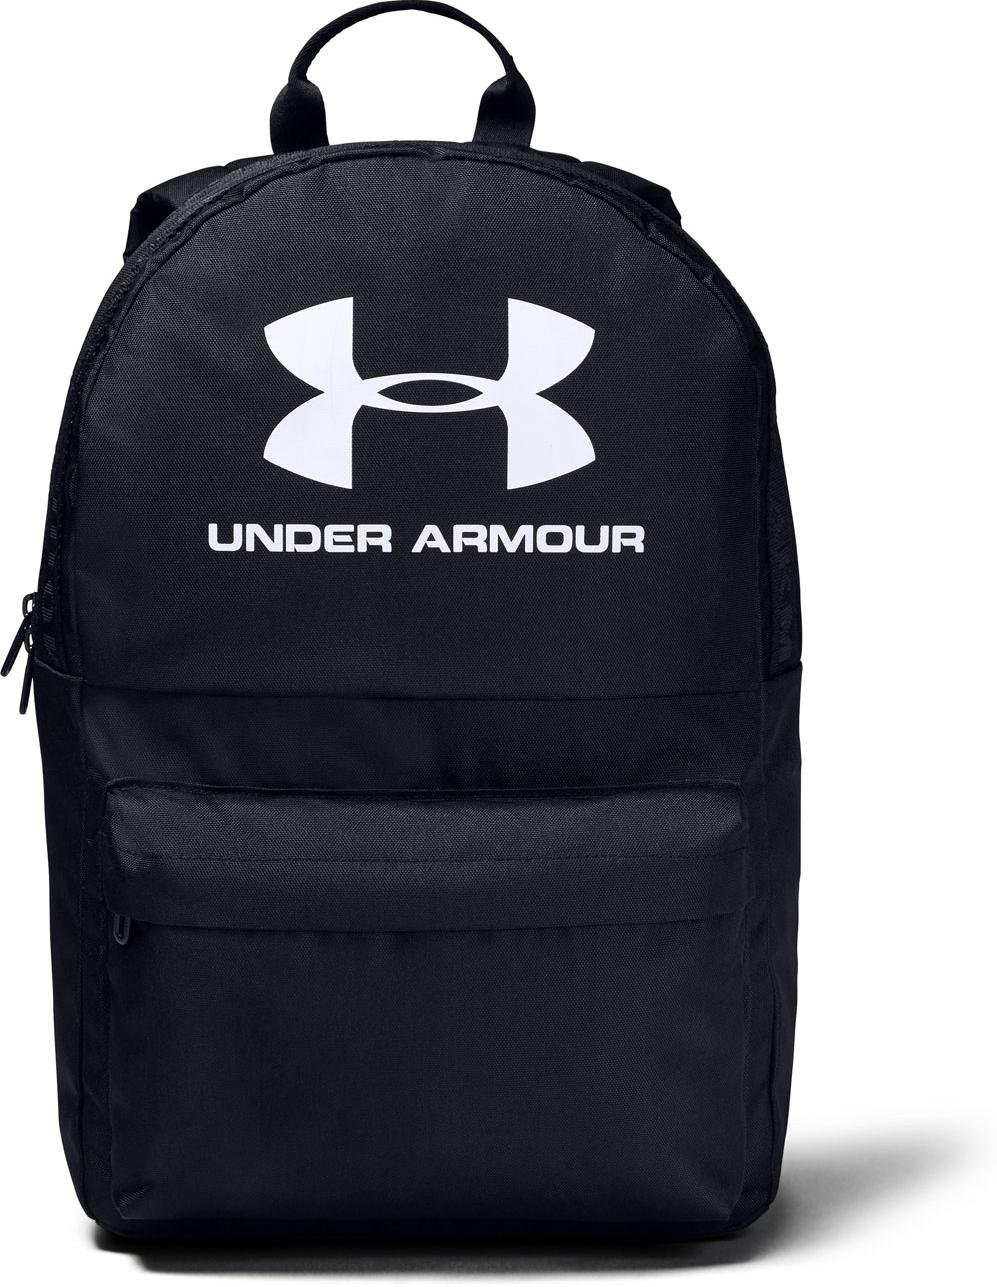 Backpack Under Armour Under Armour Loudon Backpack